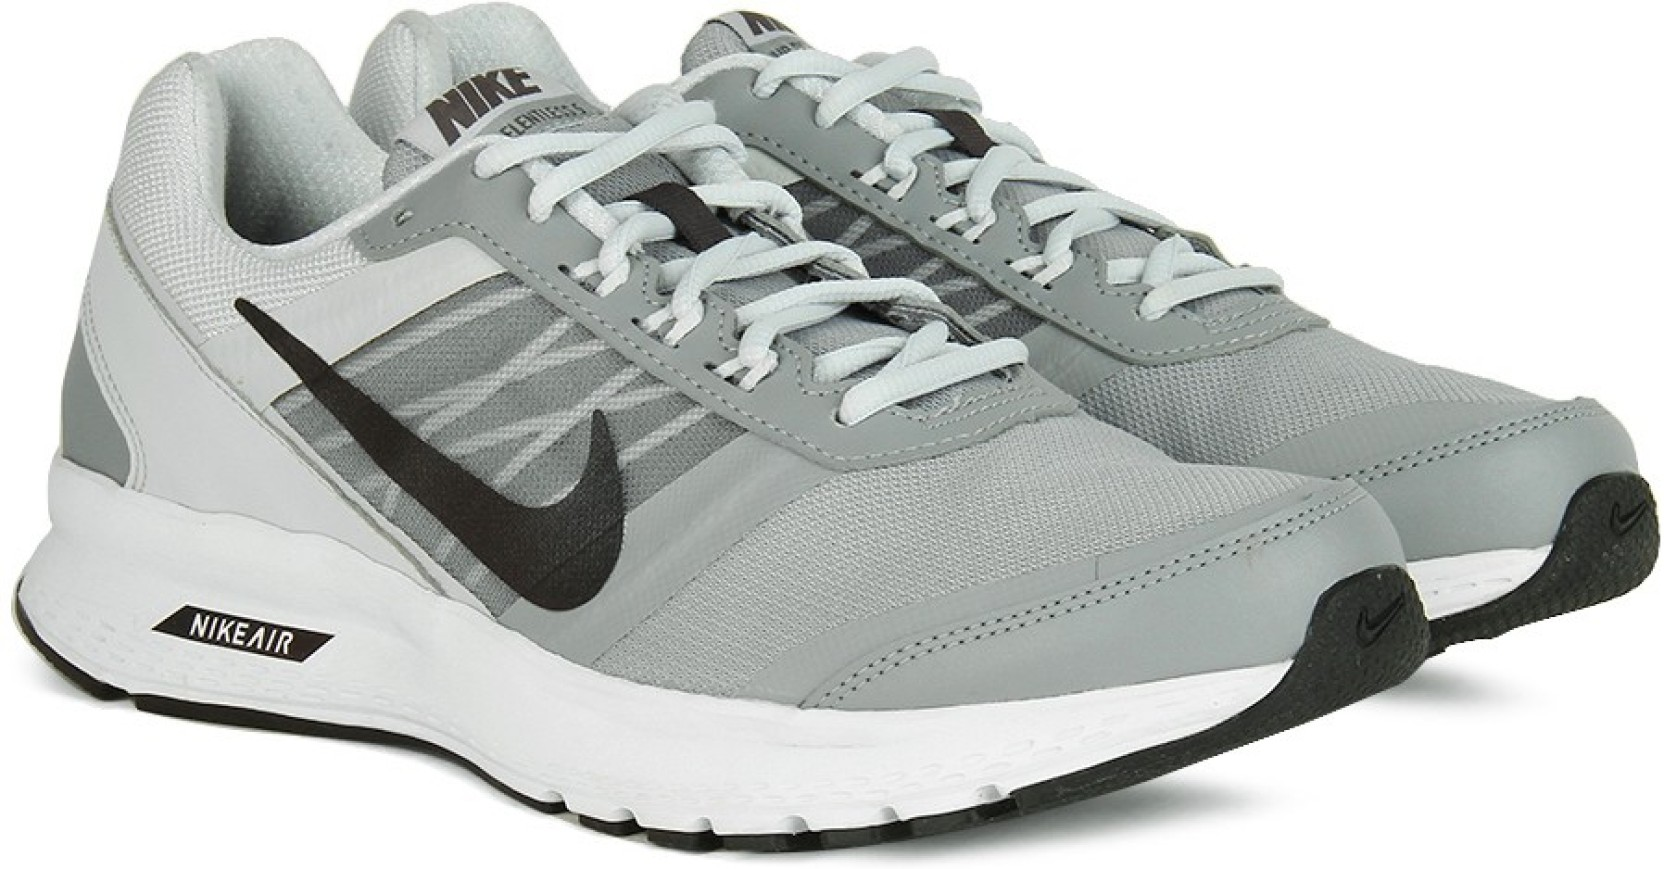 Nike AIR RELENTLESS 5 MSL Men Running Shoes For Men - Buy STLTH ... 6fbb9f296